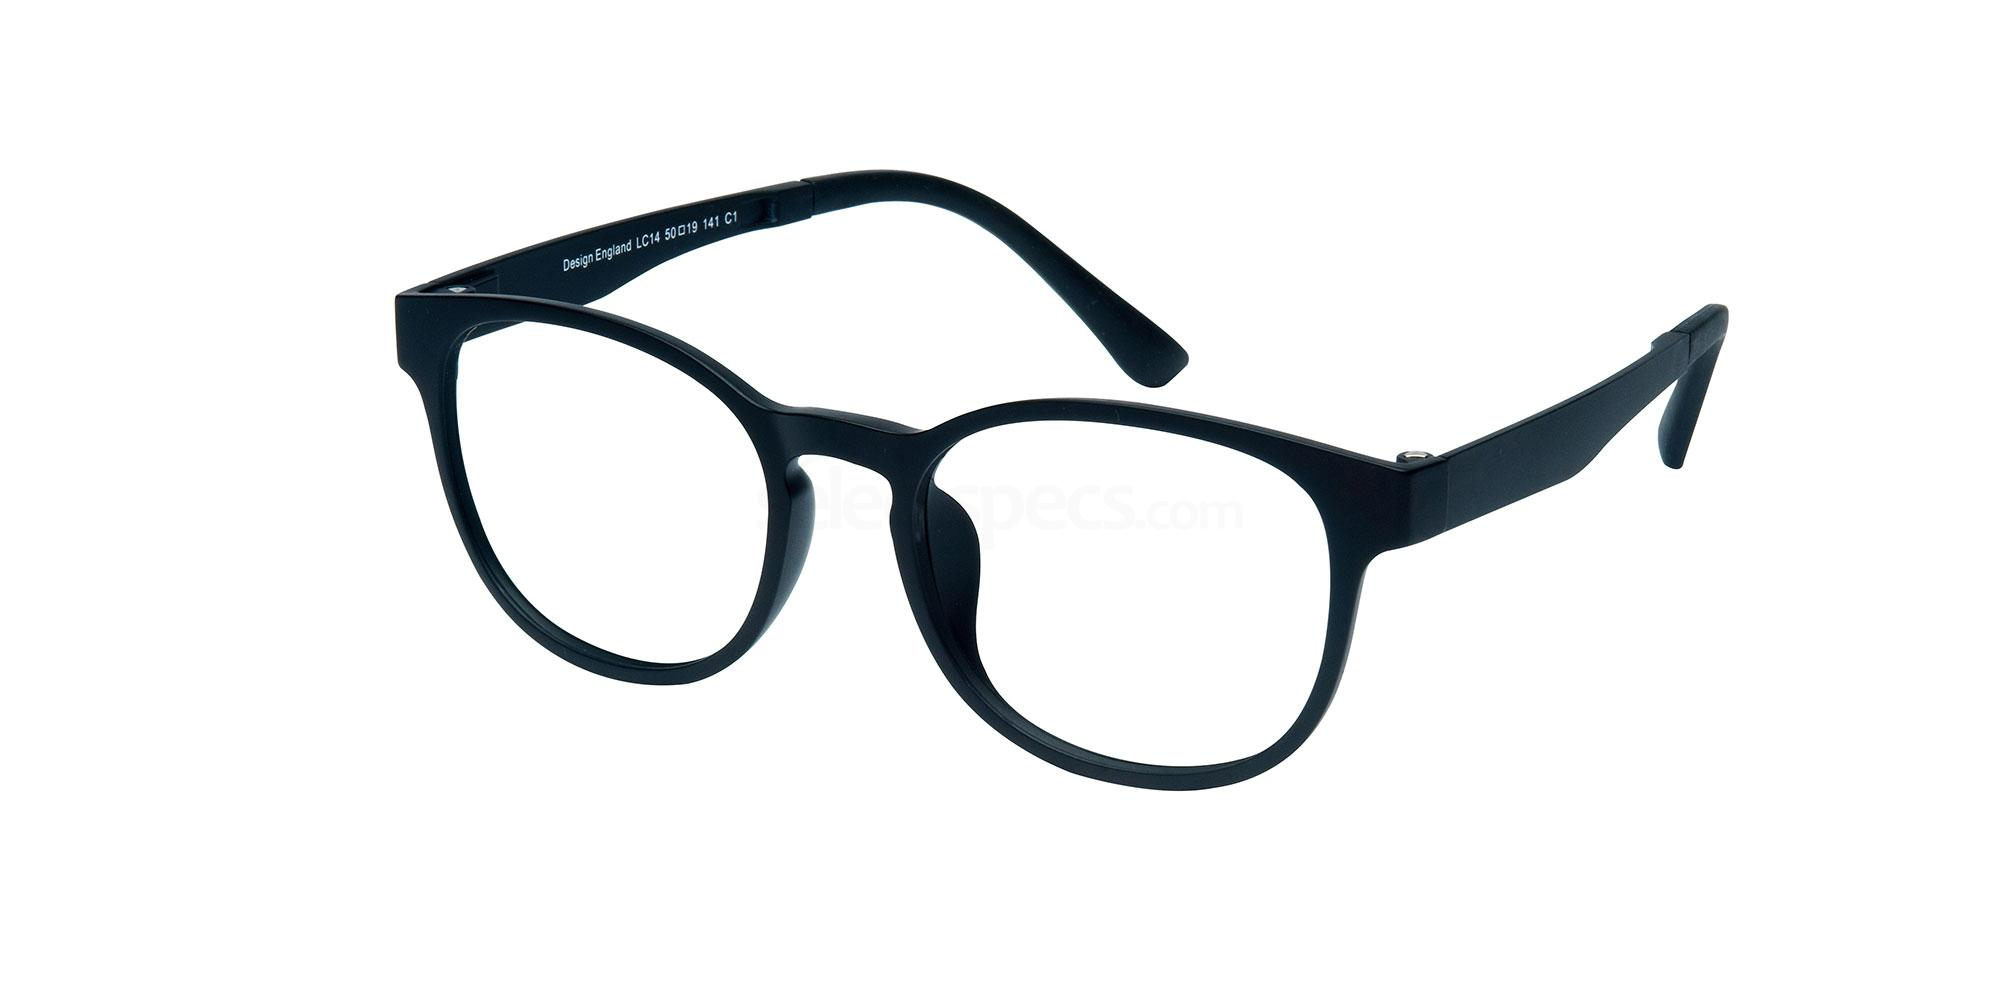 C1 LC14 with Clip On Glasses, London Club